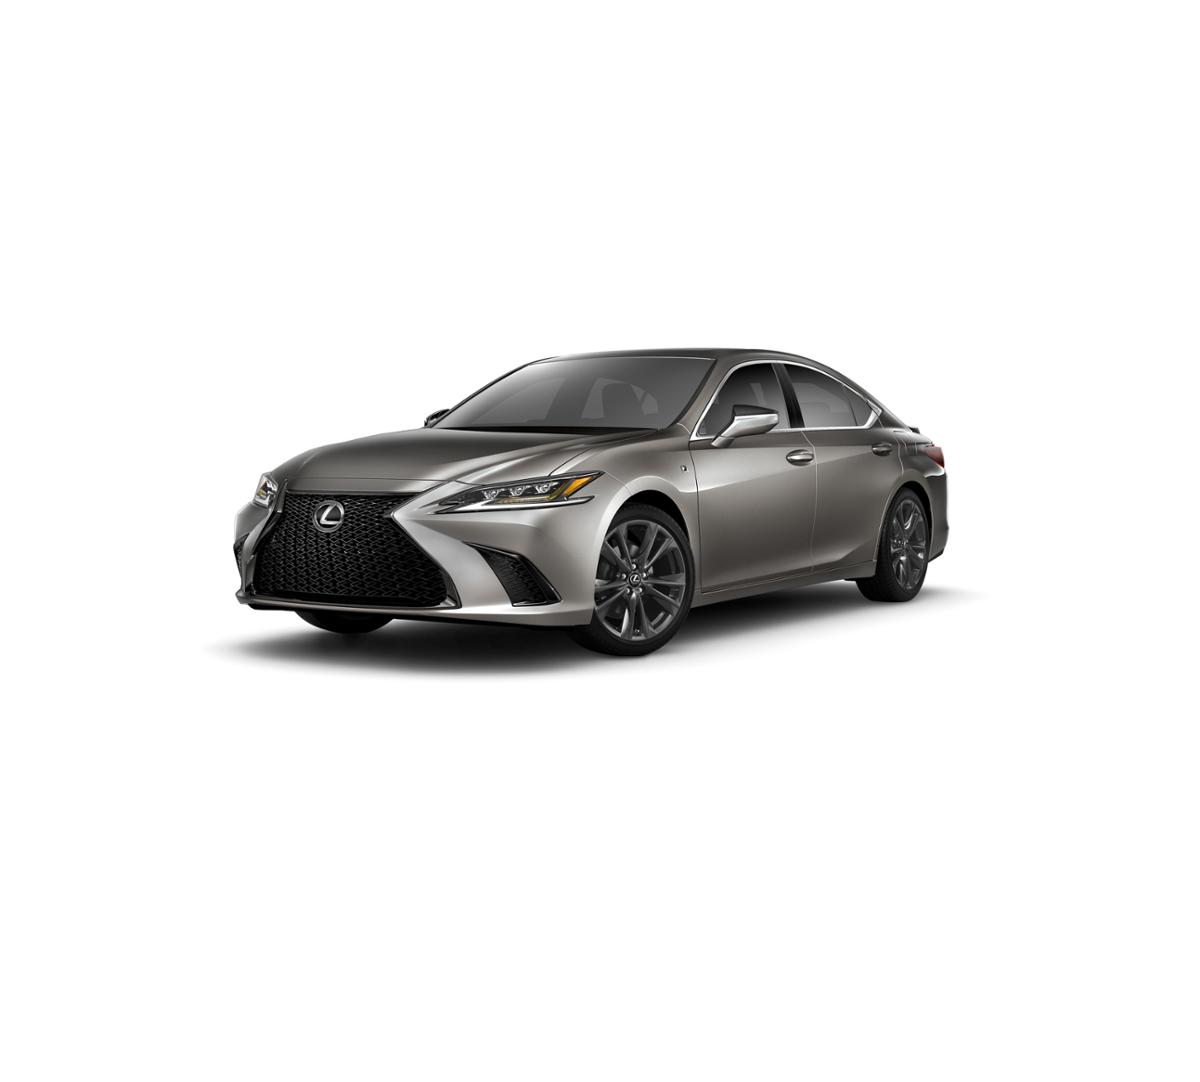 2019 Lexus ES 350 Vehicle Photo in El Monte, CA 91731